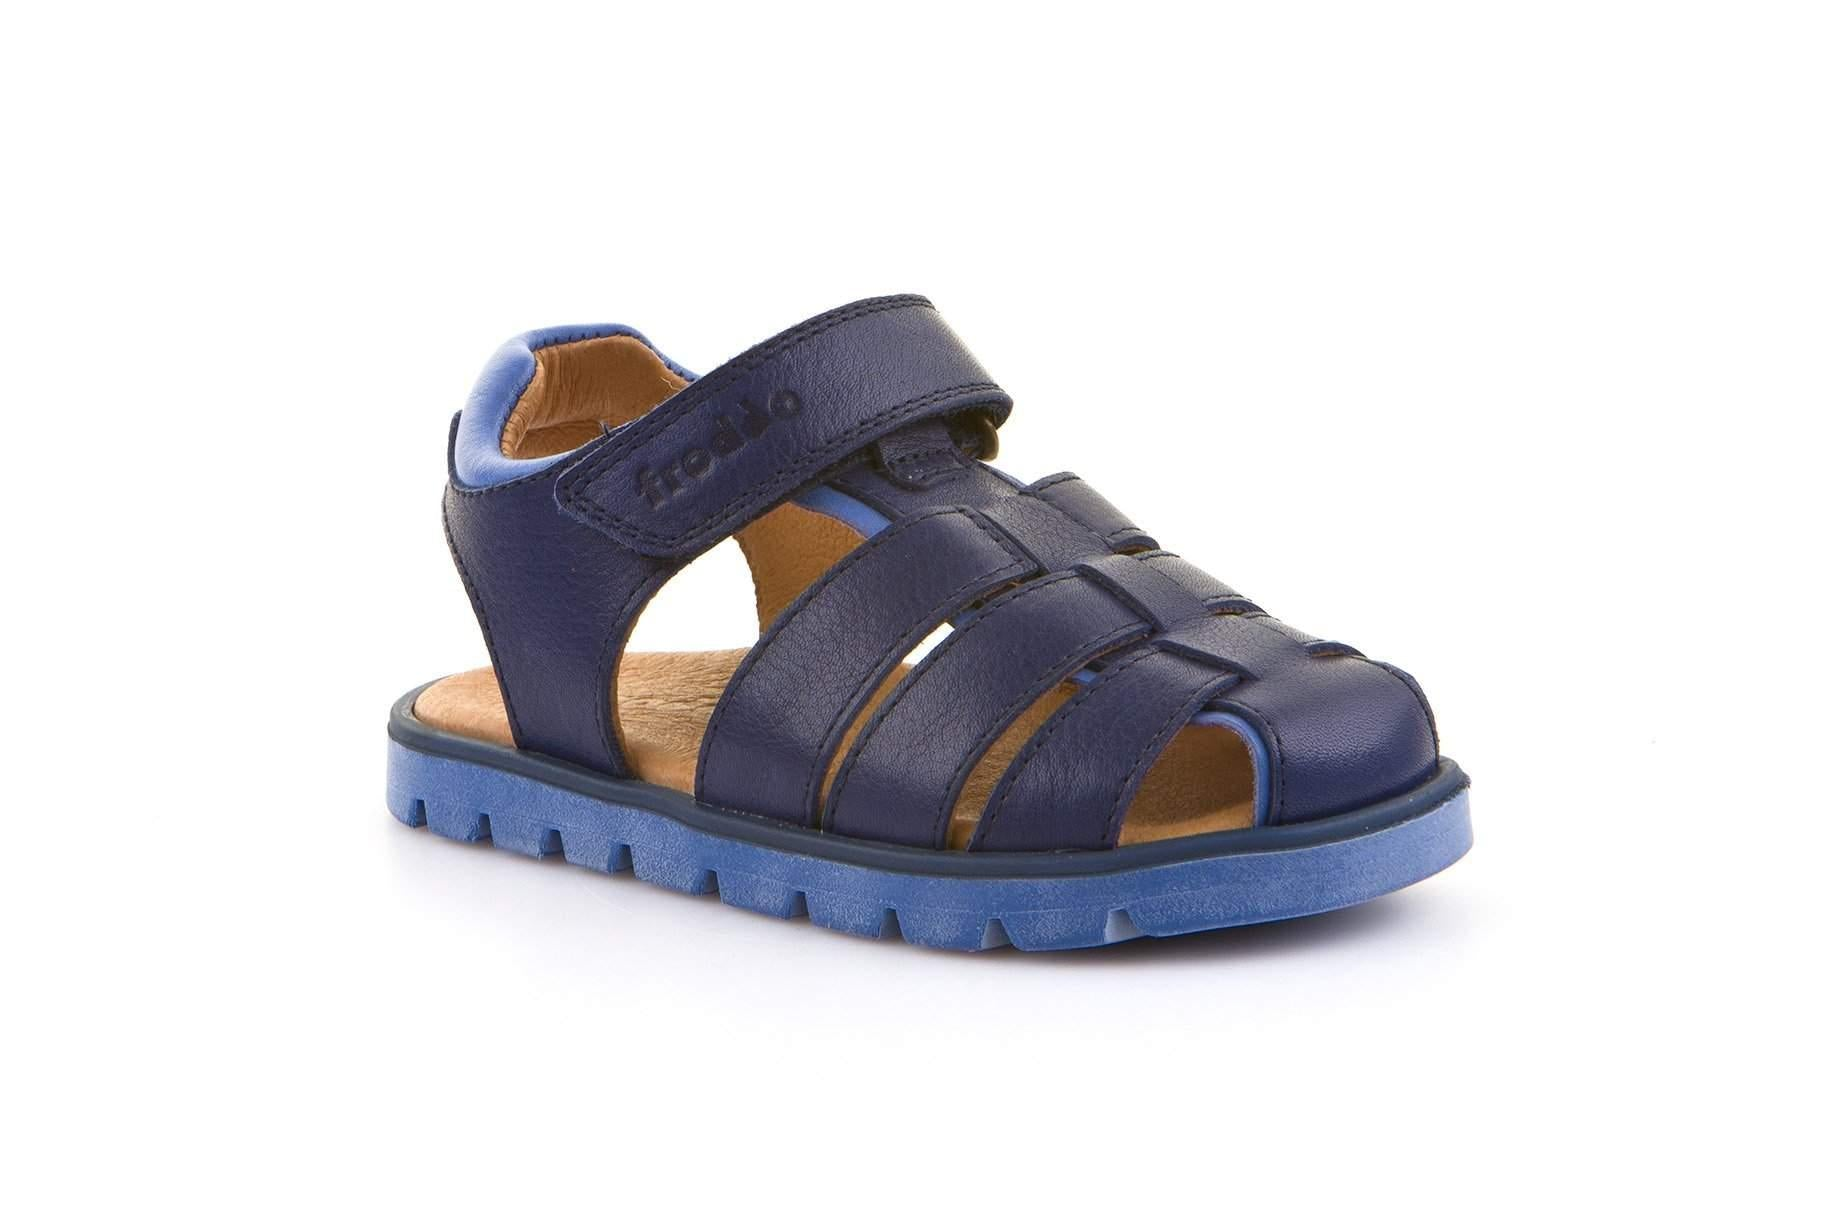 Froddo/G3150144/Navy/Boys Leather Sandals - ShoeKid.ca